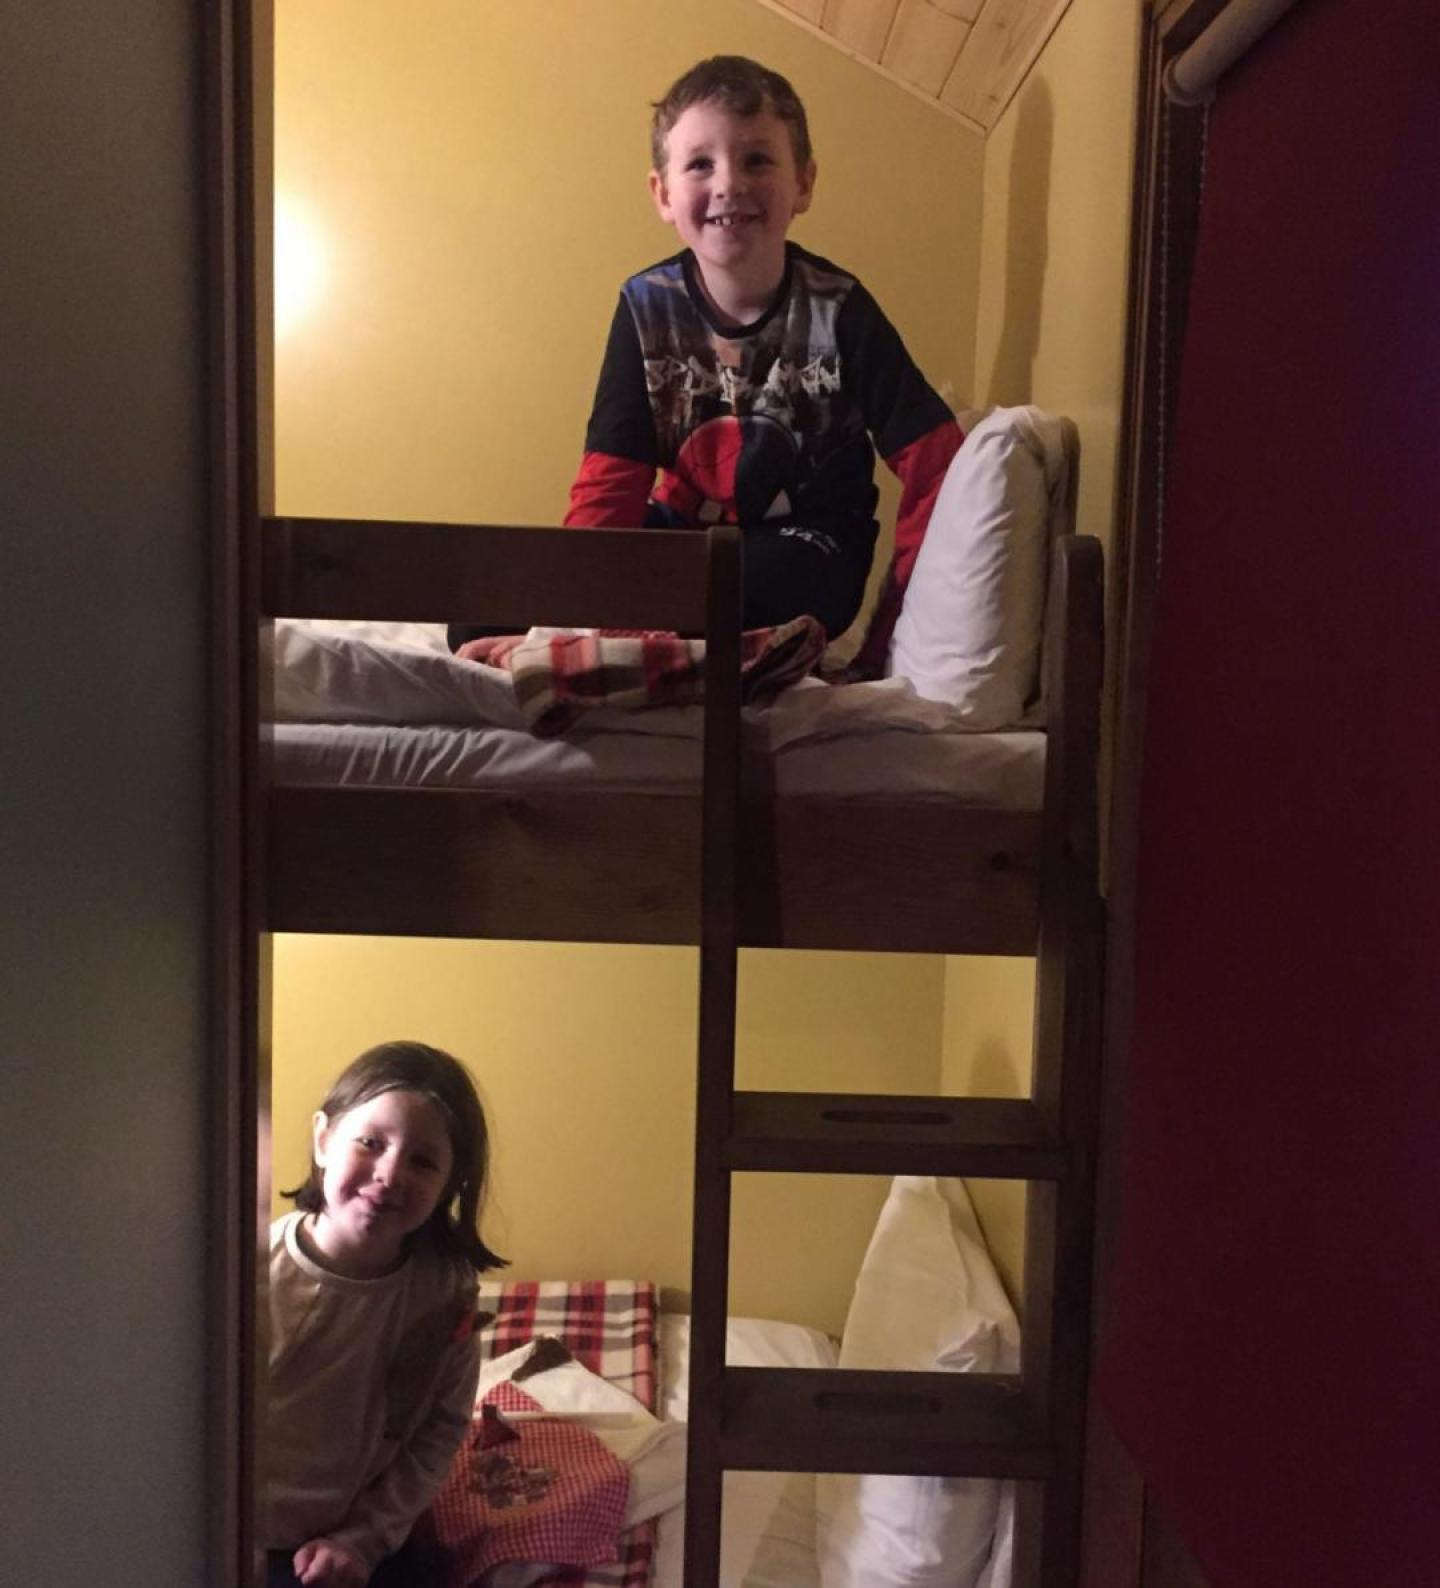 The bunk beds the kids slept in on the santa sleepover